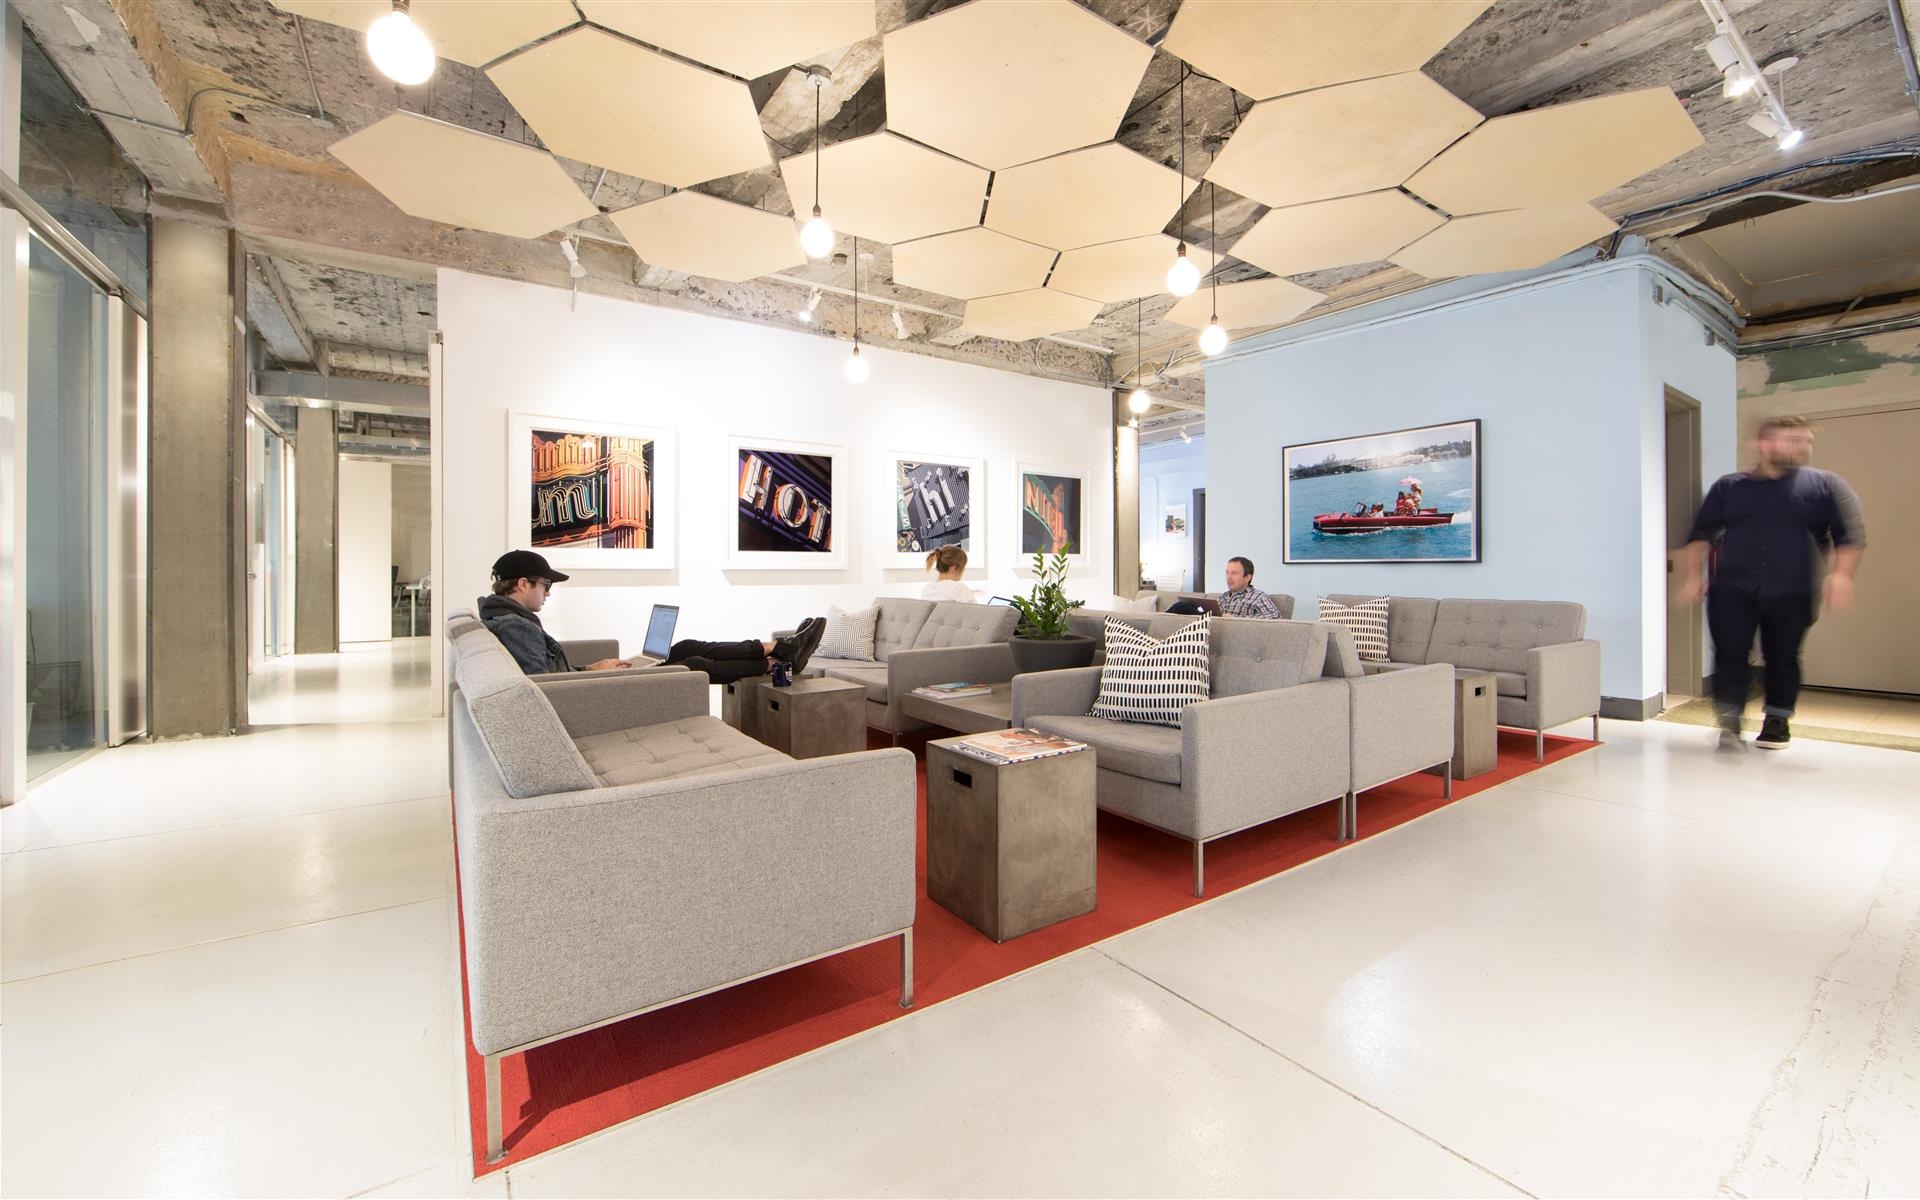 The Yard: Lower East Side NYC - Open Coworking Daypass